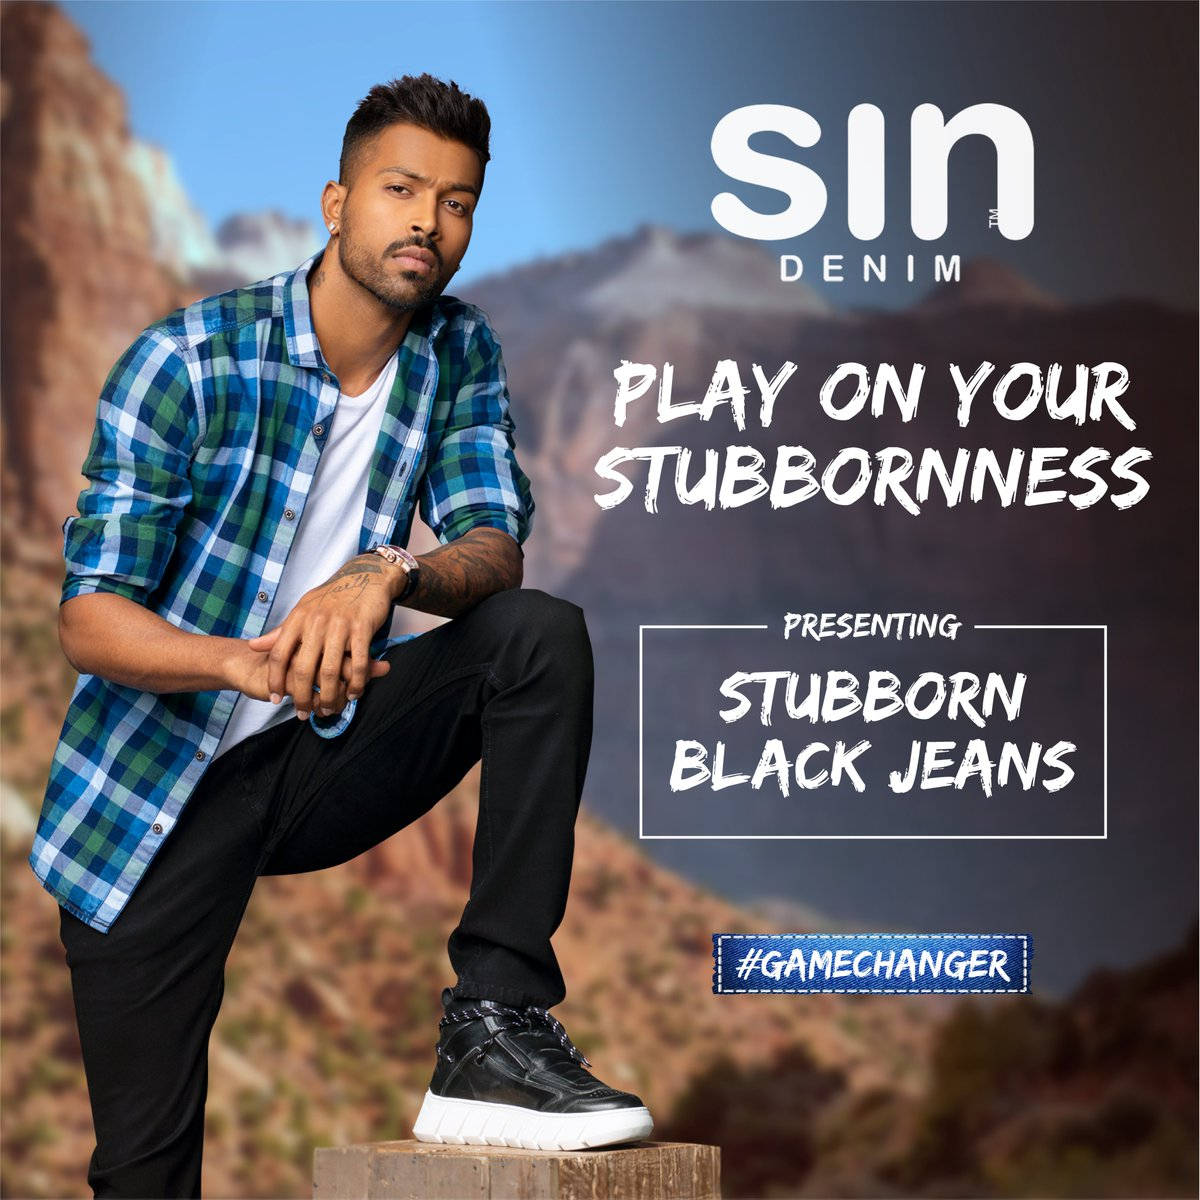 Unleash the blacks, like never before. Presenting the #Gamechanger stubborn blacks from #sindenim. @hardikpandya7  #Sin #SinJeans